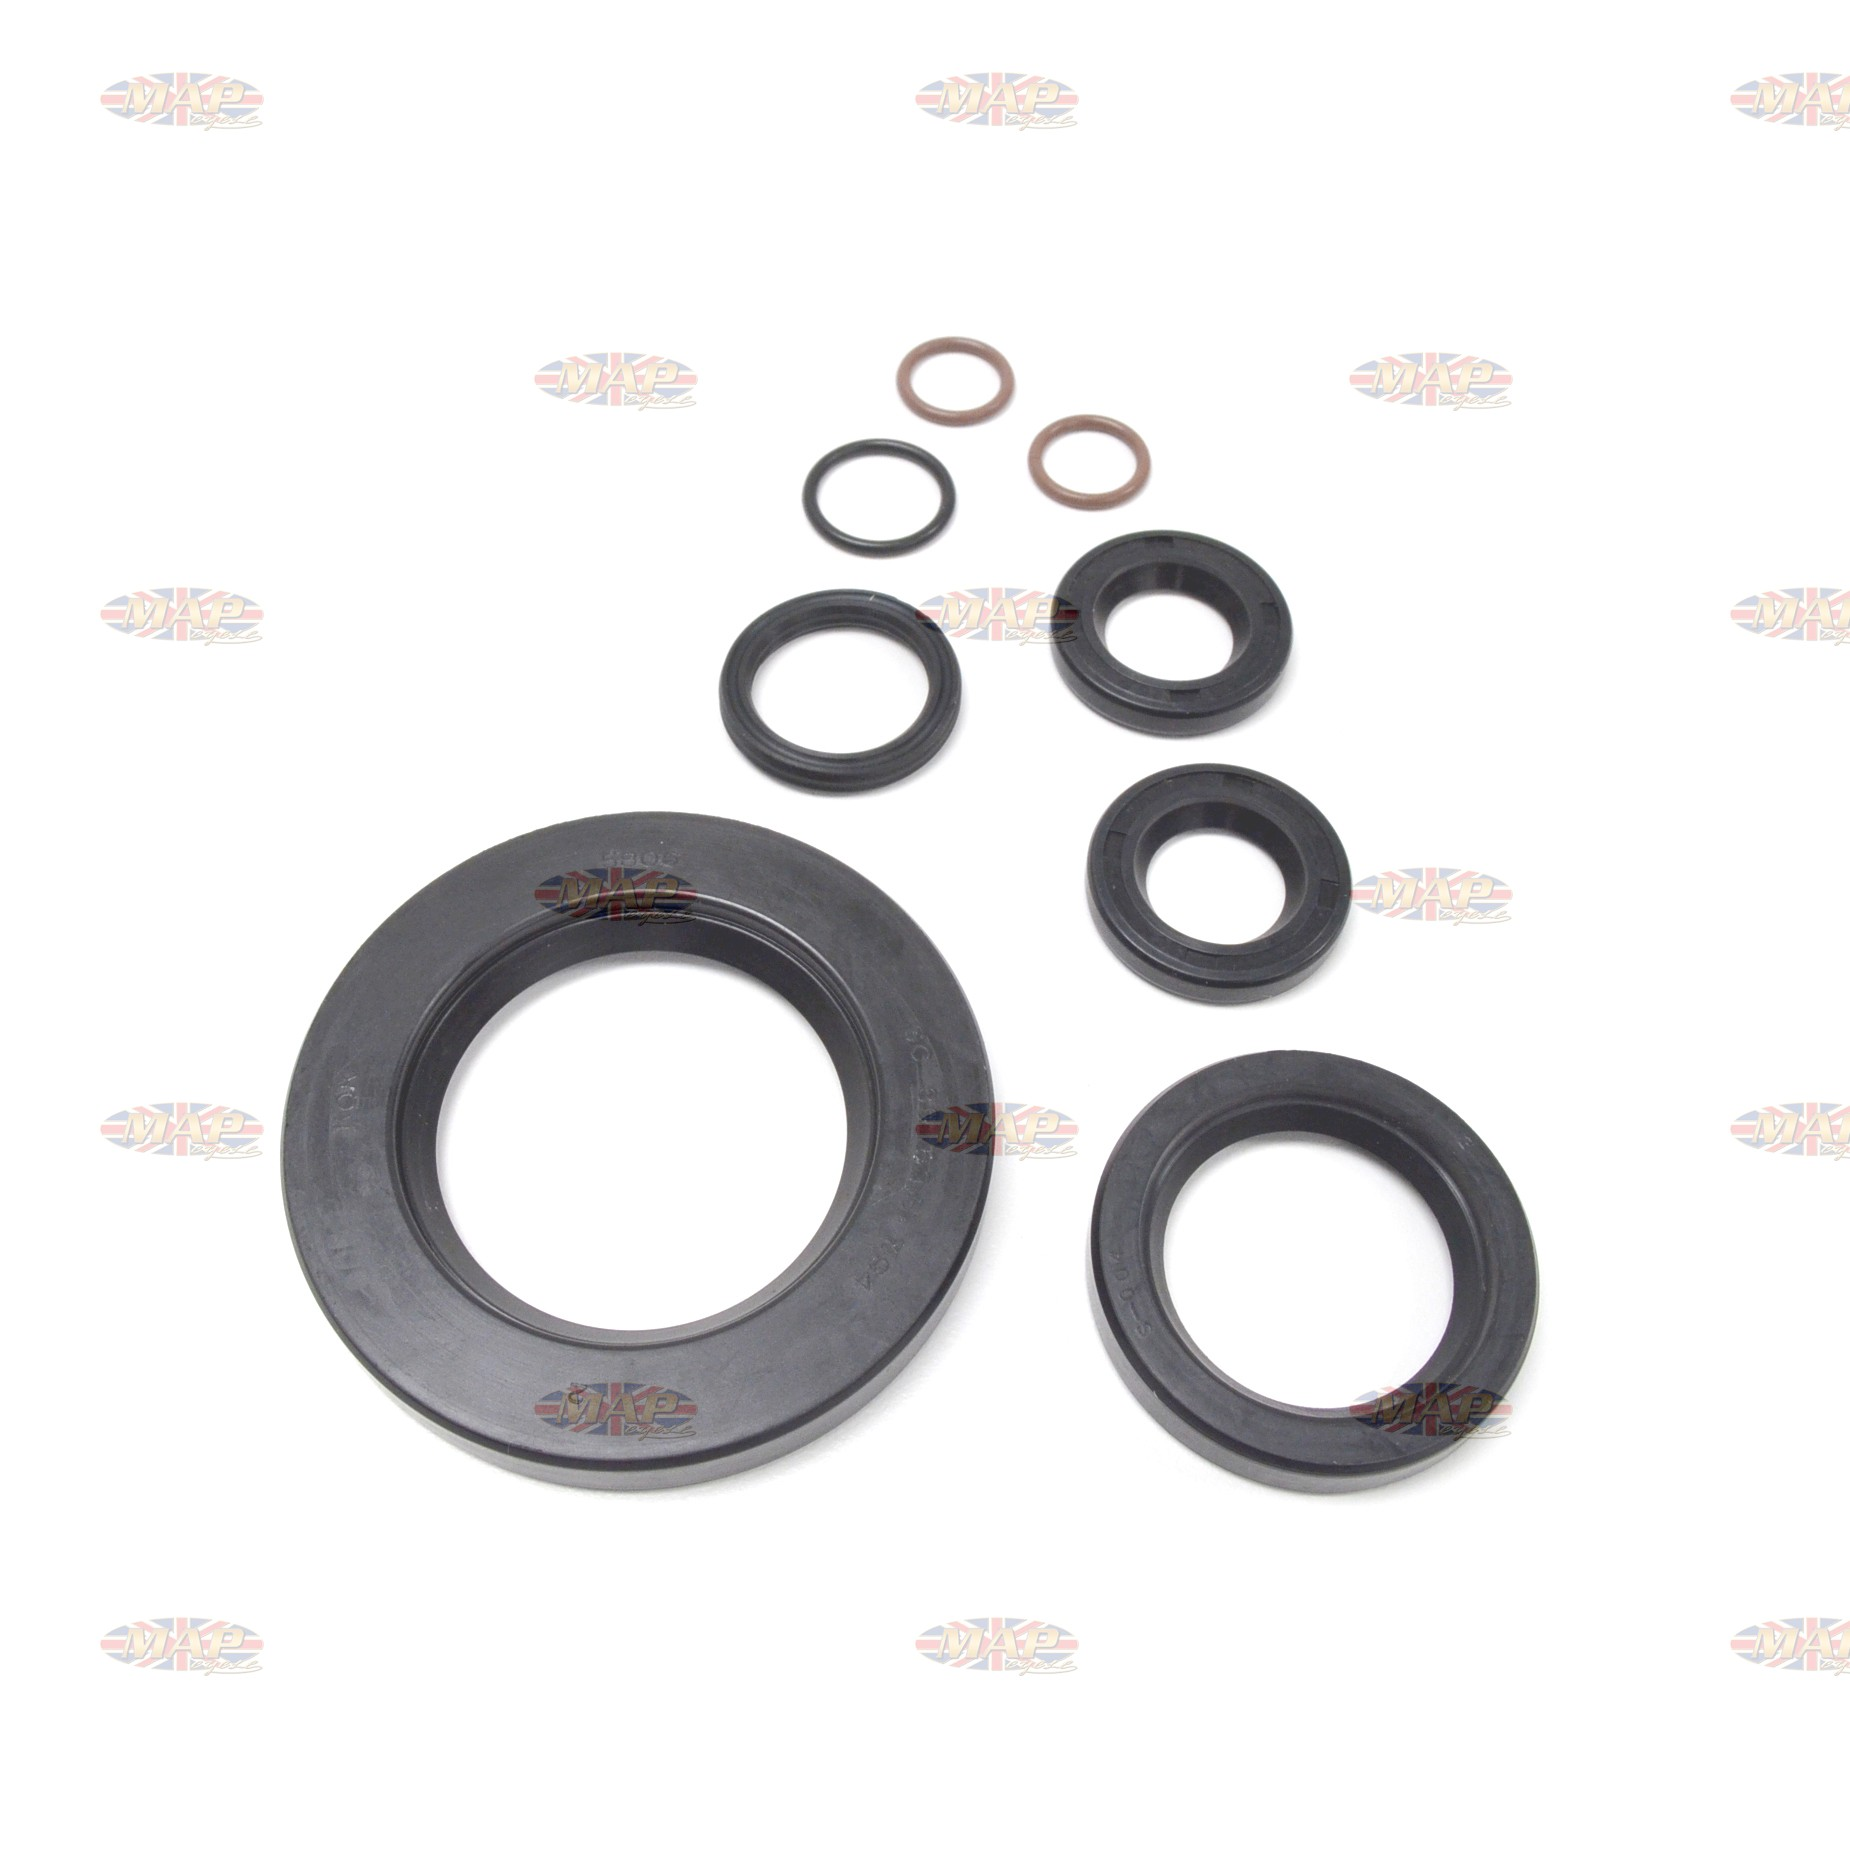 Triumph 650 1970-Later 4 Speed Seal Kit MAP0204/C